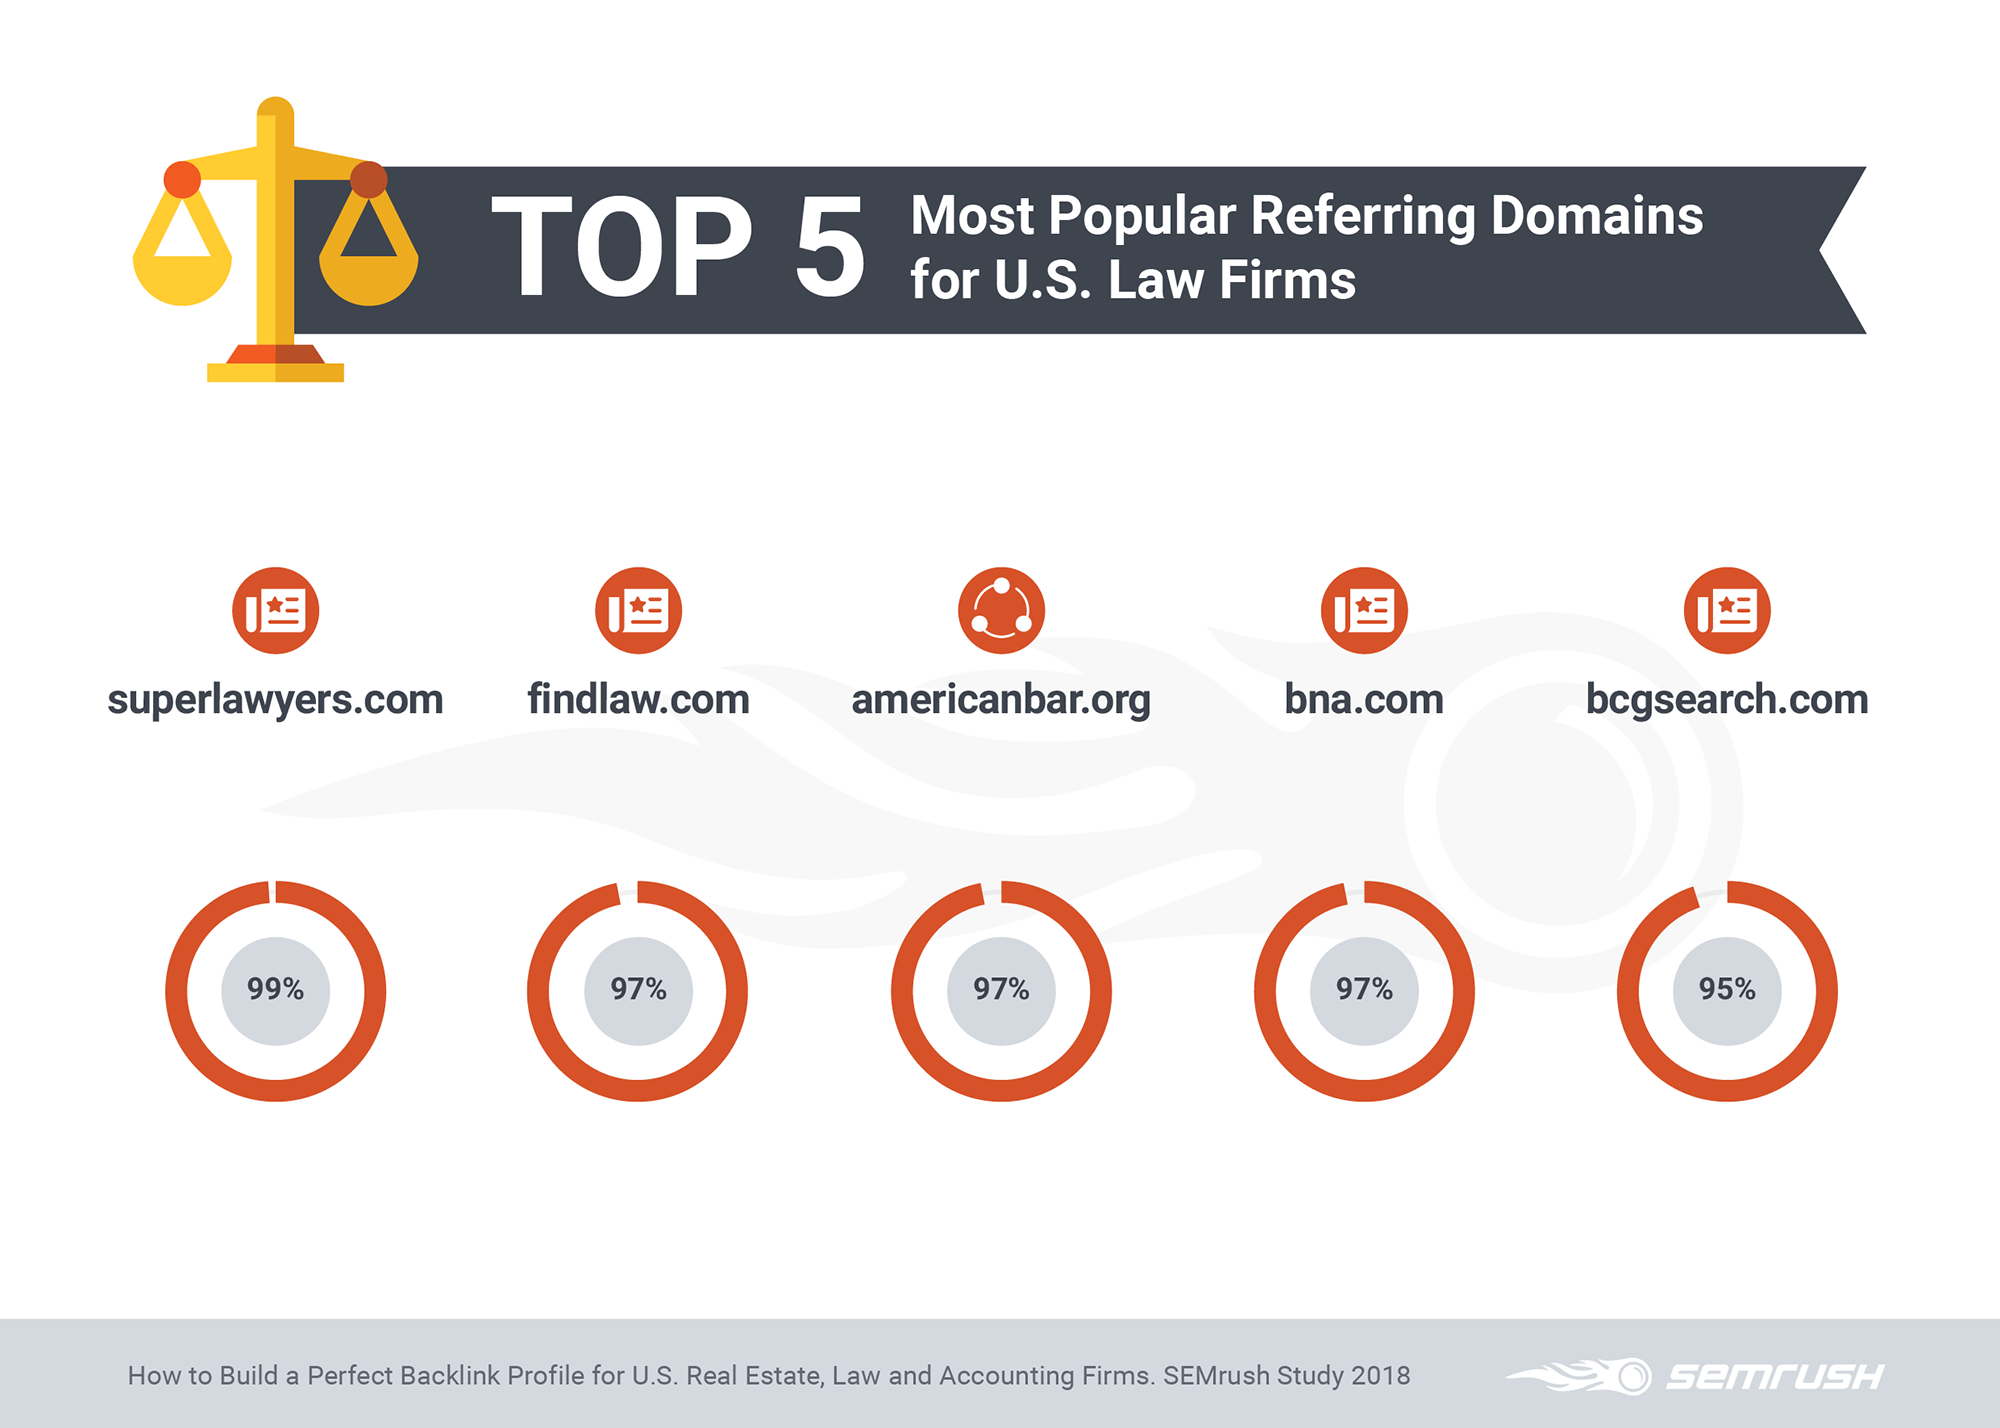 Top 5 Most Popular Referring Domains for Law Firms